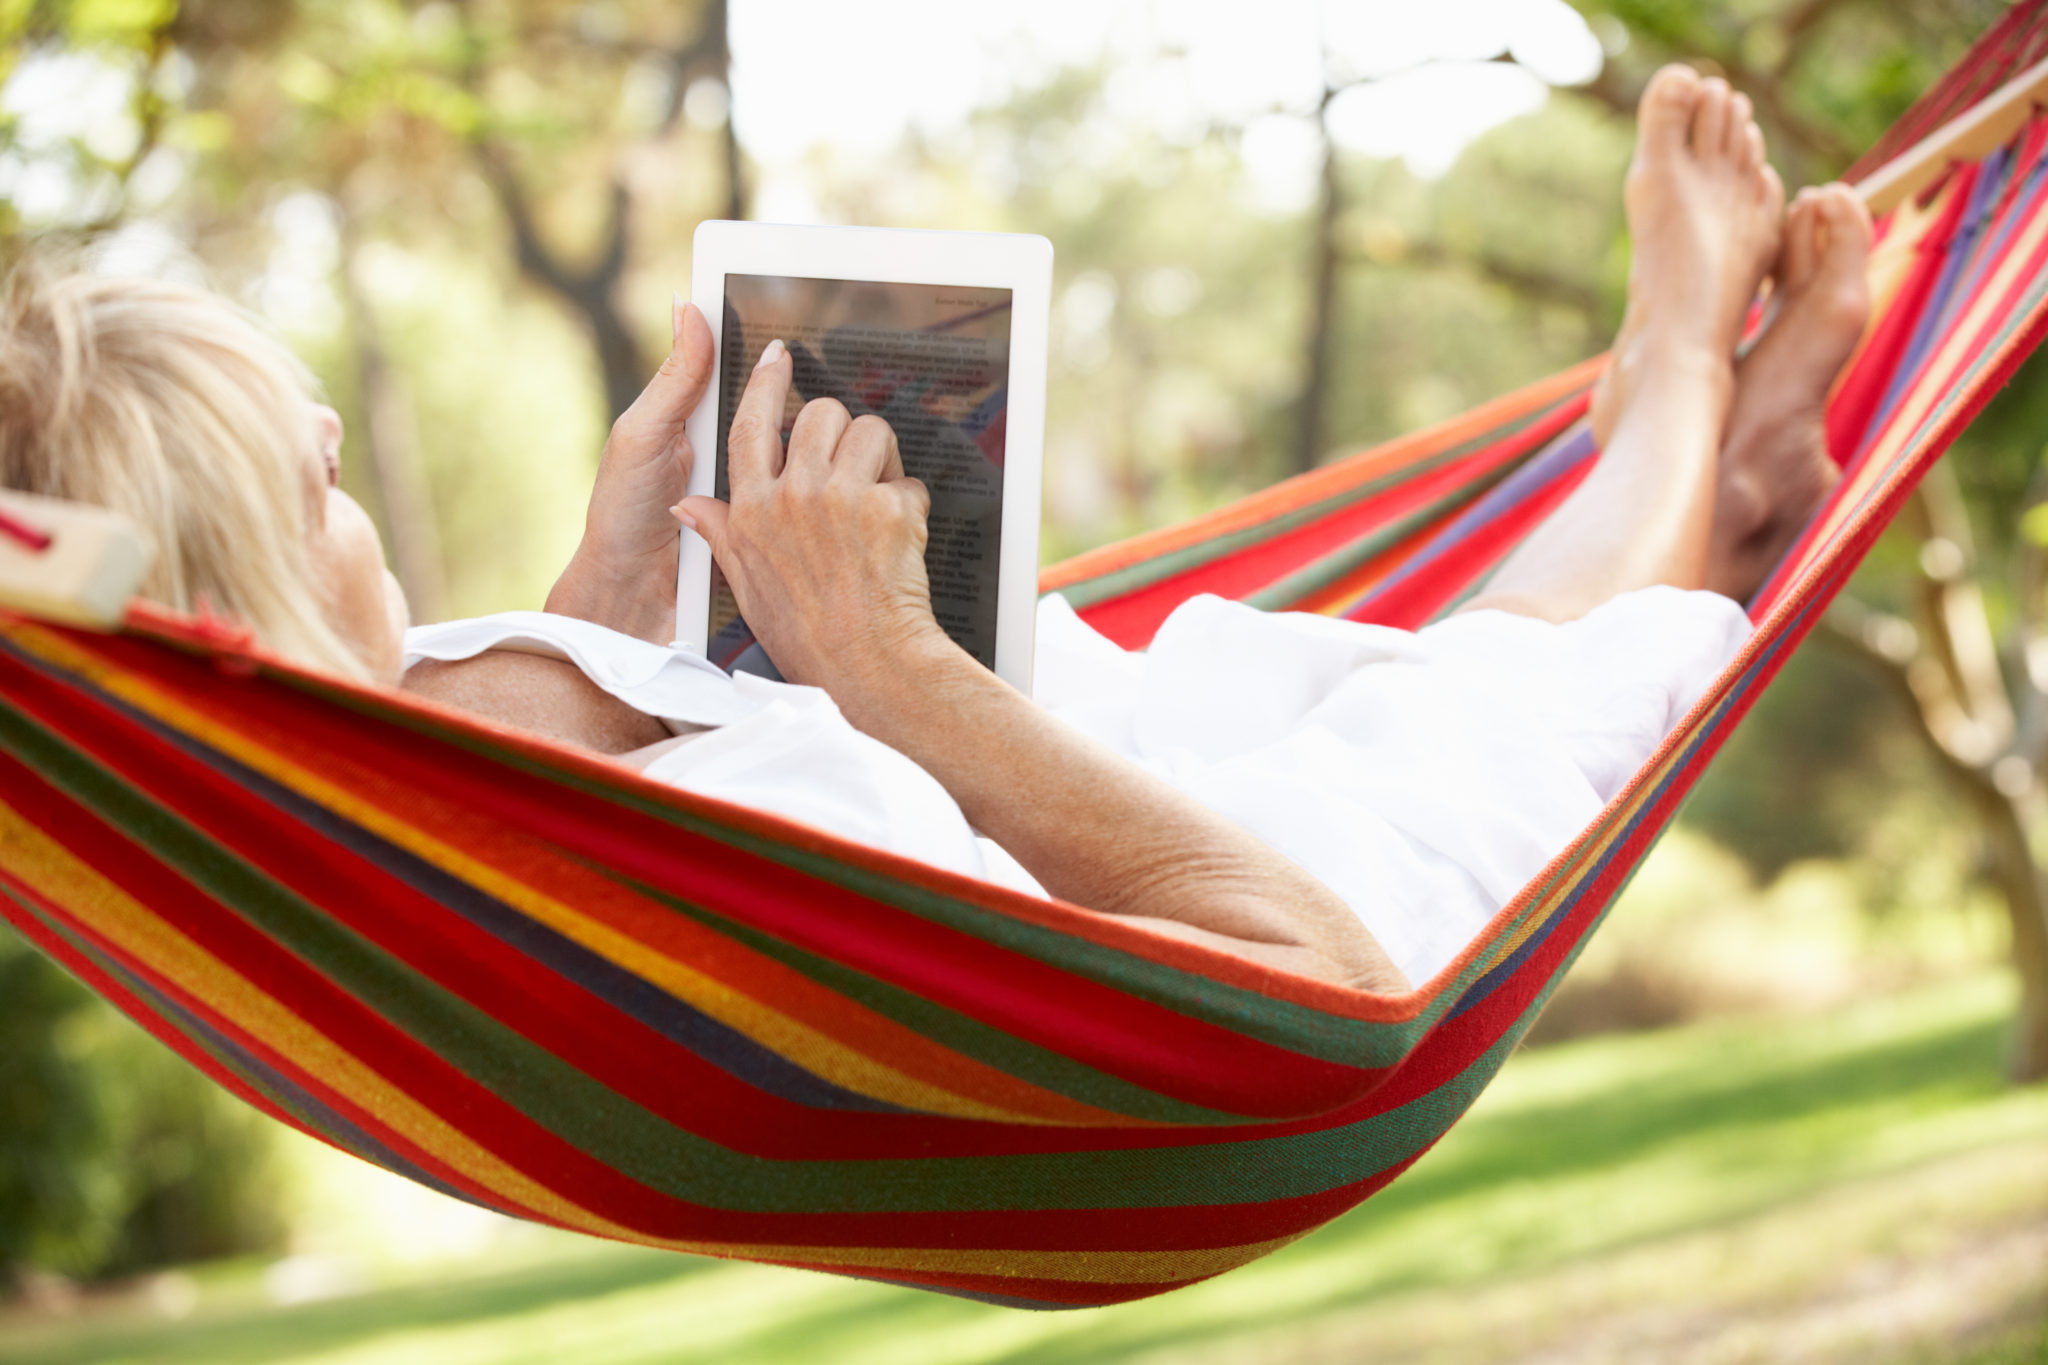 large - woman hammock ipad tablet